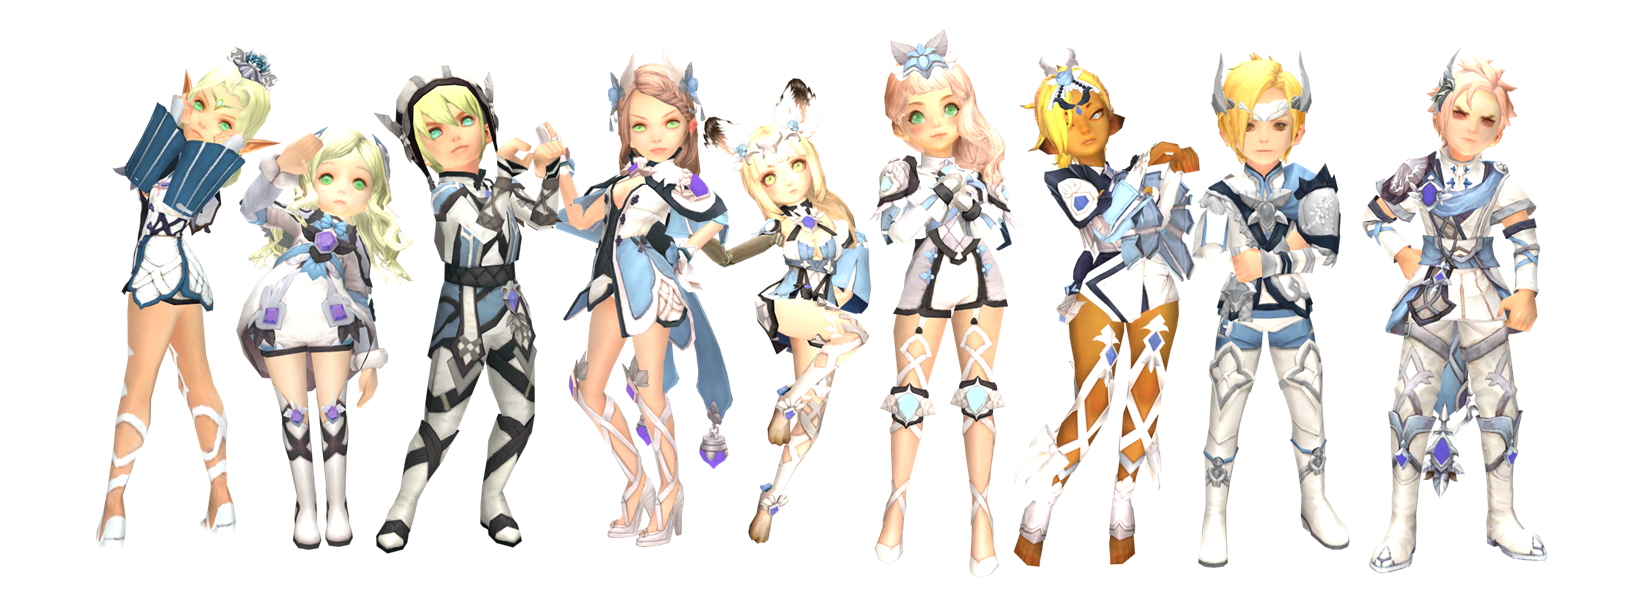 Savior Costume 2.png  sc 1 st  Dragon Nest SEA Wiki - Fandom & Image - Savior Costume 2.png | Dragon Nest SEA Wiki | FANDOM powered ...